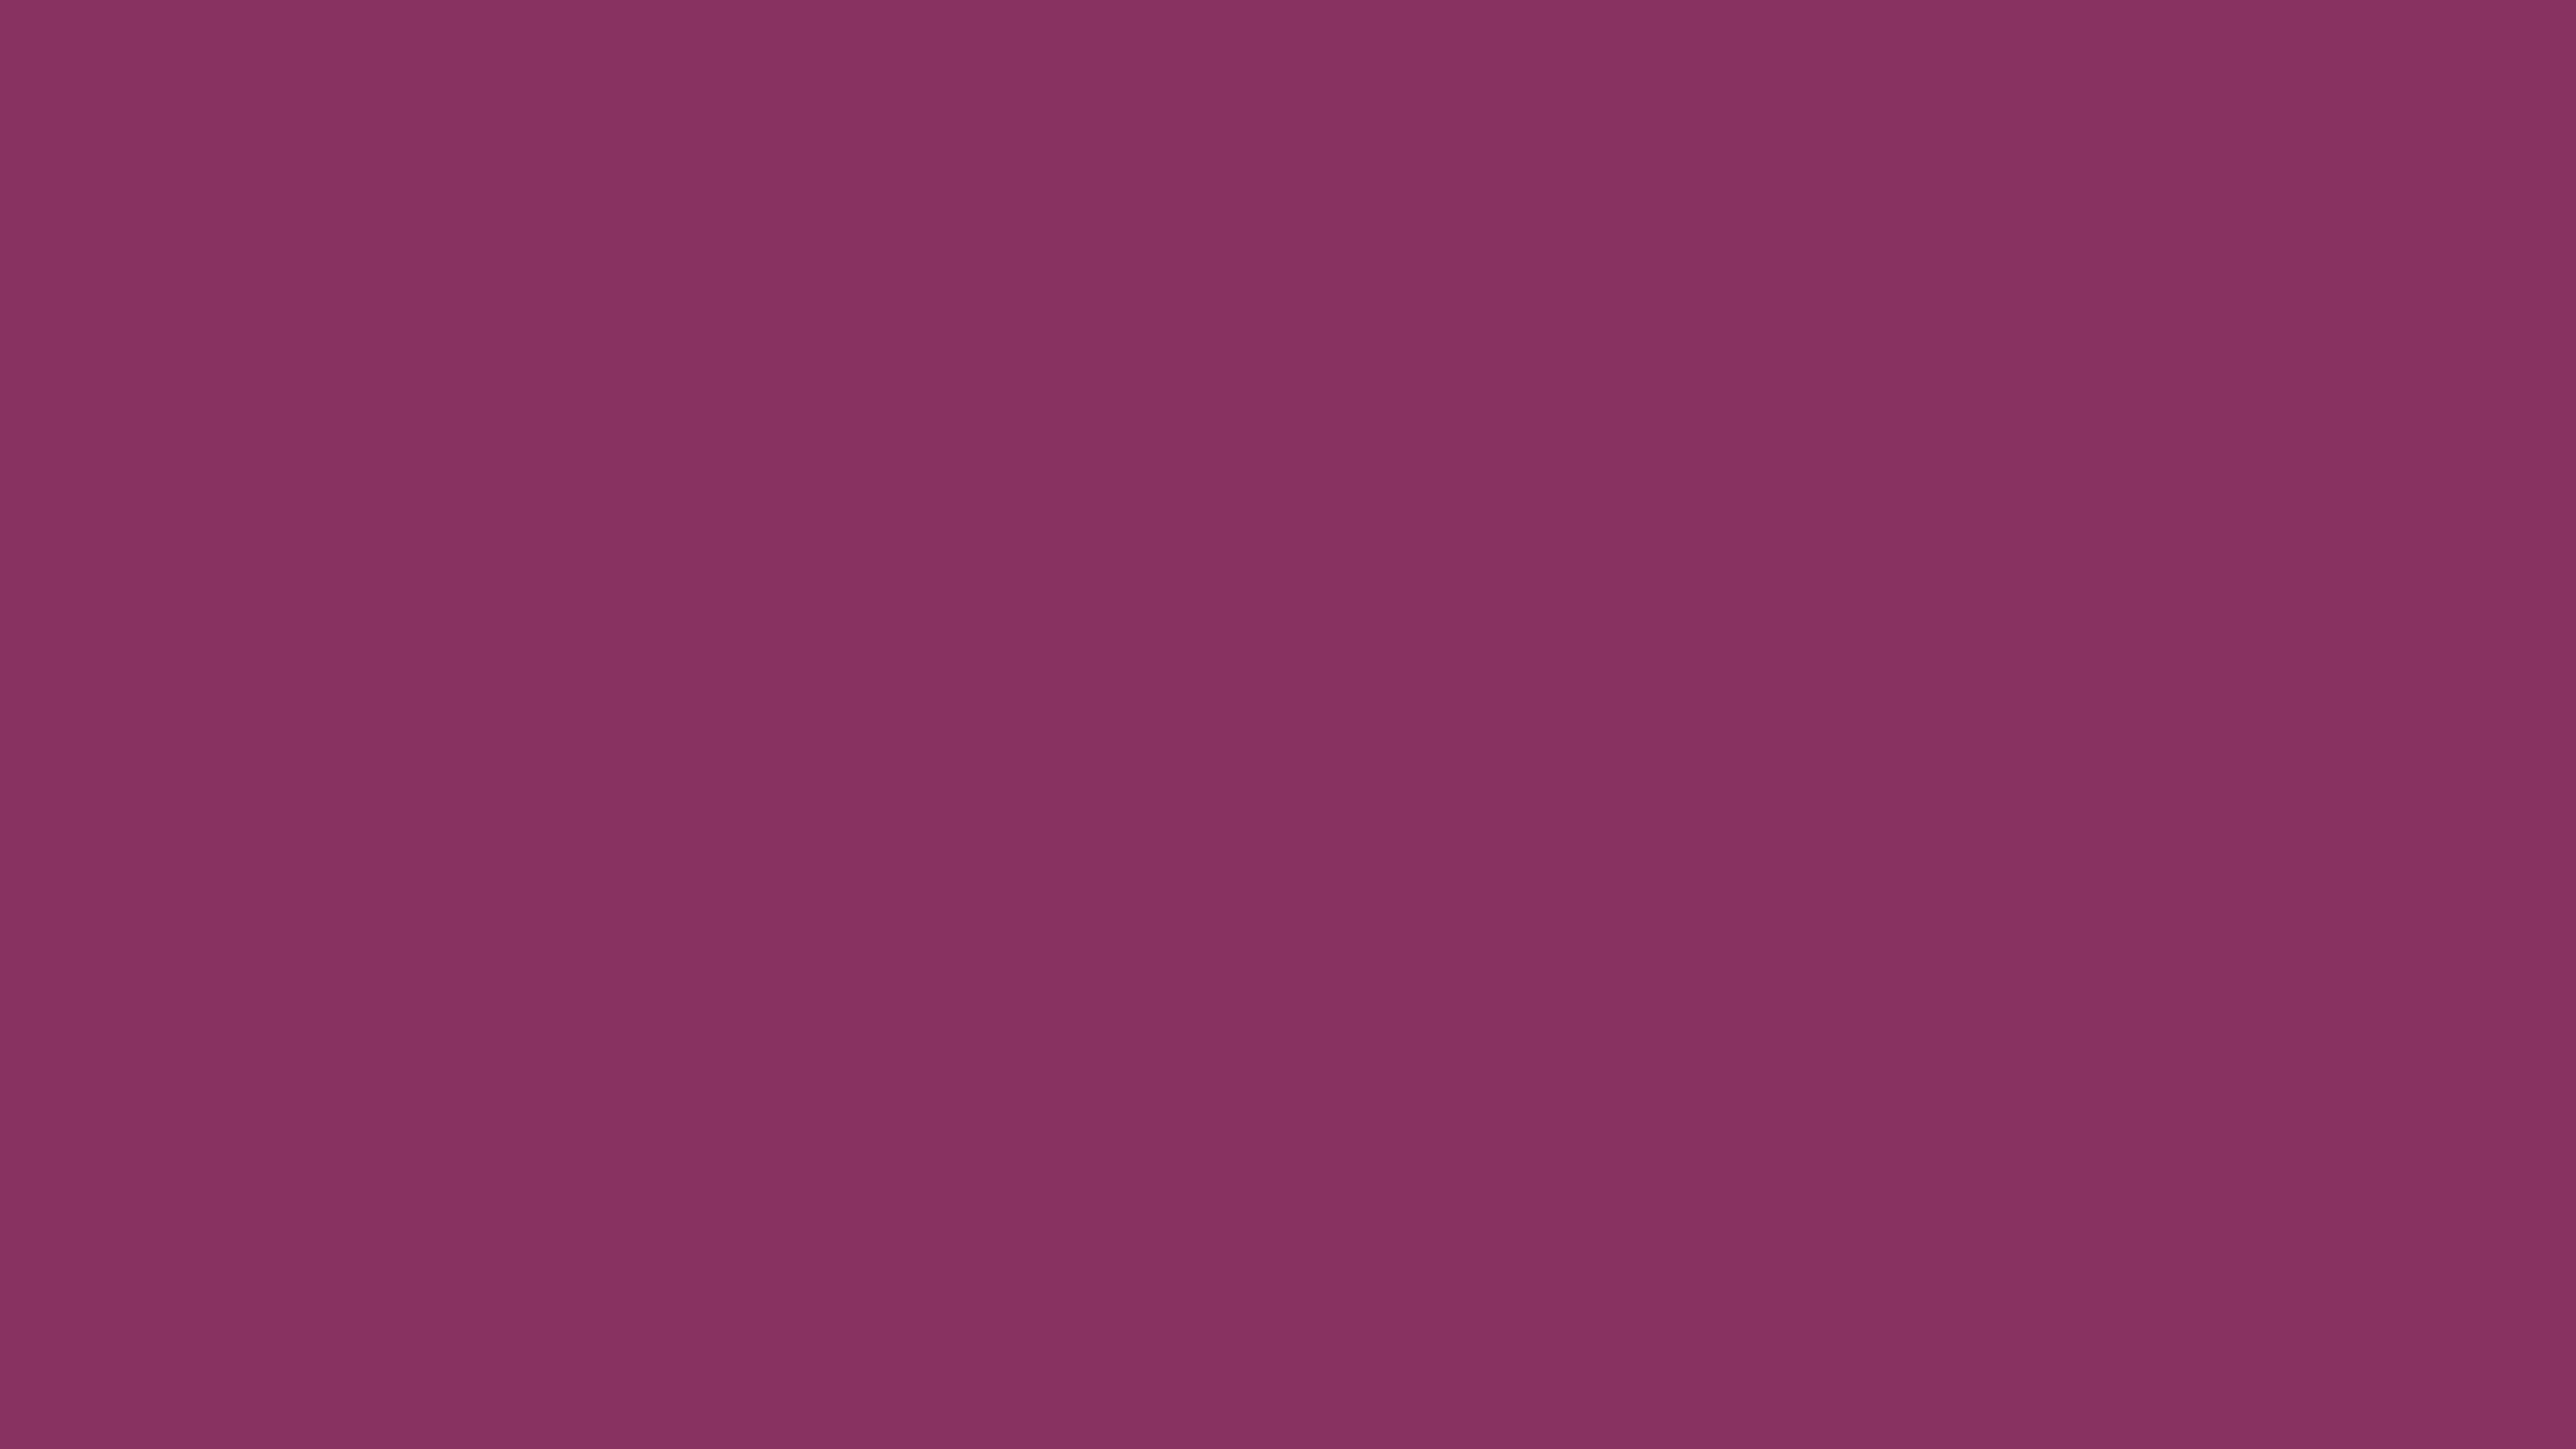 5120x2880 Boysenberry Solid Color Background